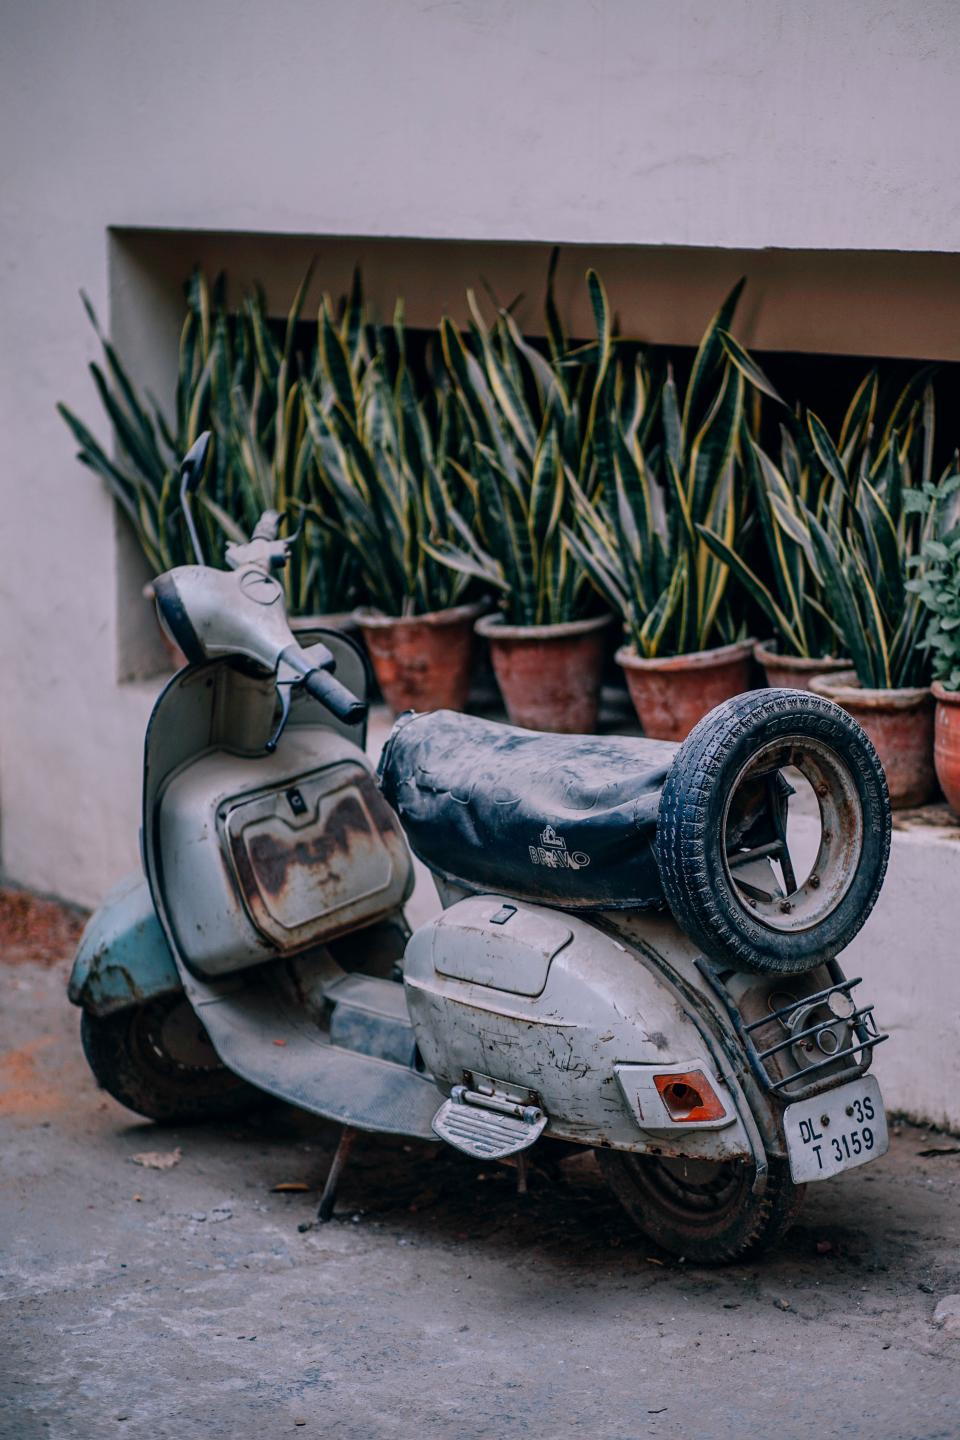 old, scooter, motorcycle, transportation, travel, parking, green, plant, nature, flower, pot, outside